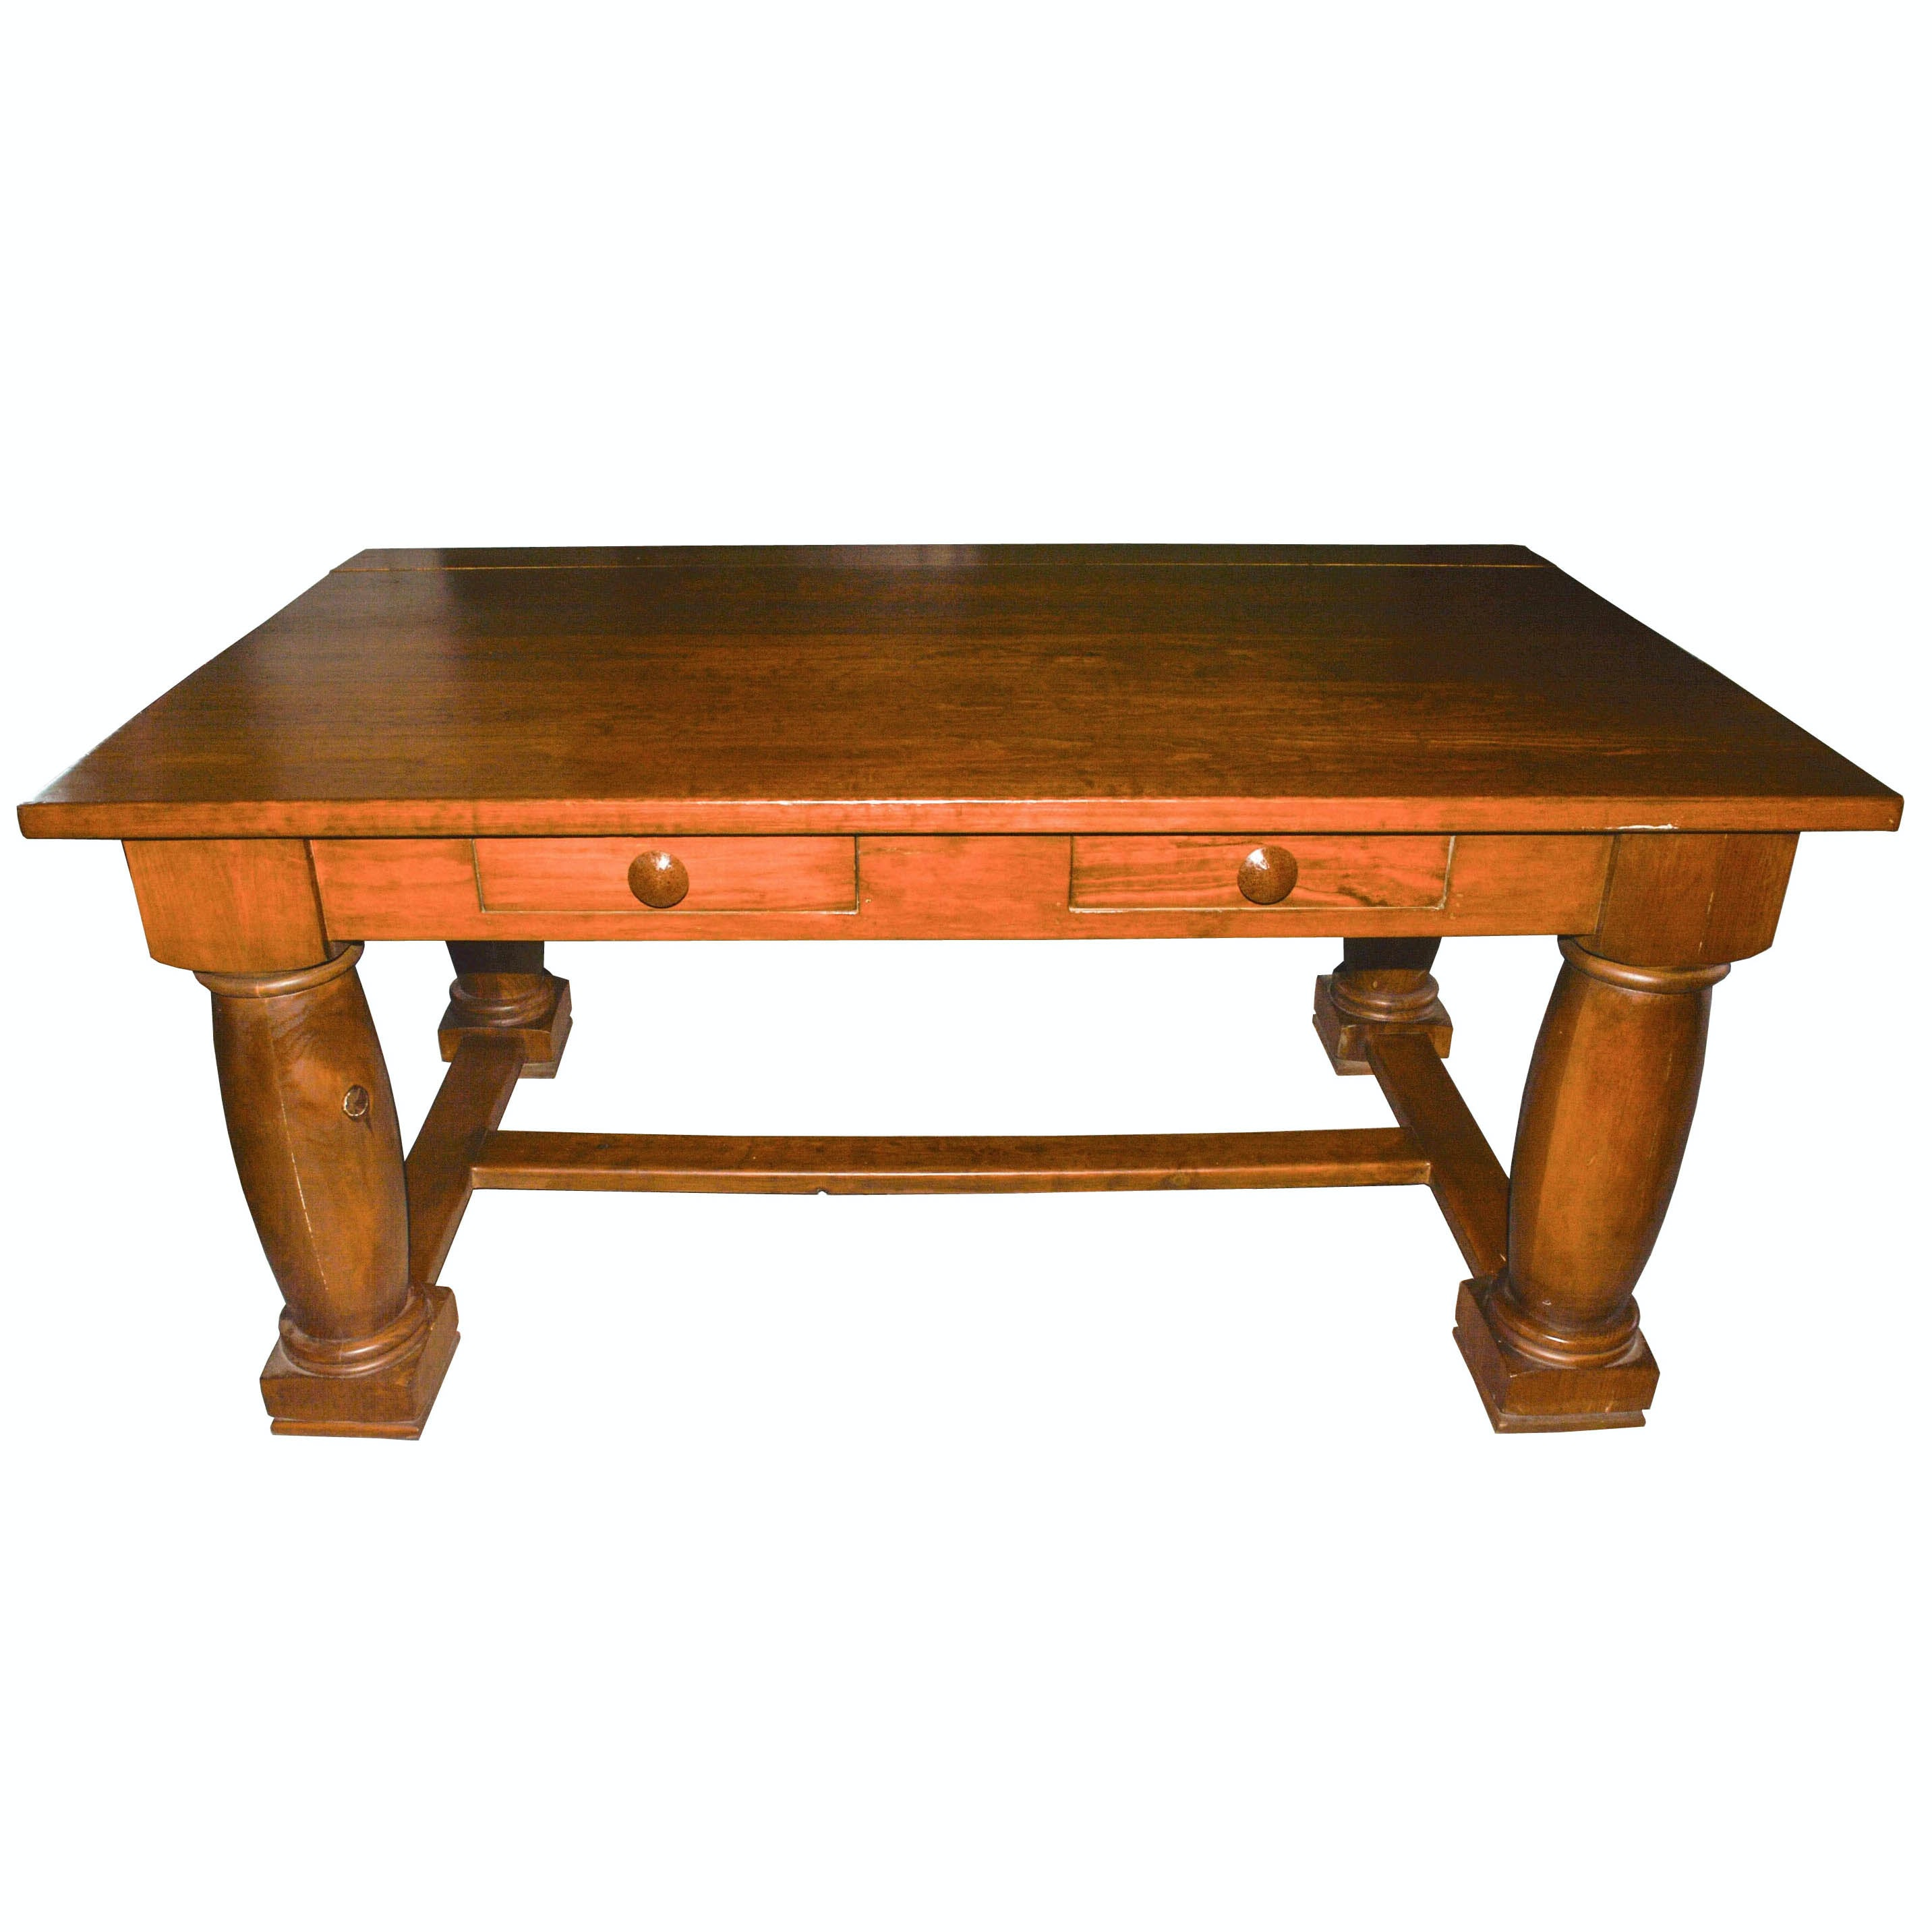 Solid Wood Table With Drawers